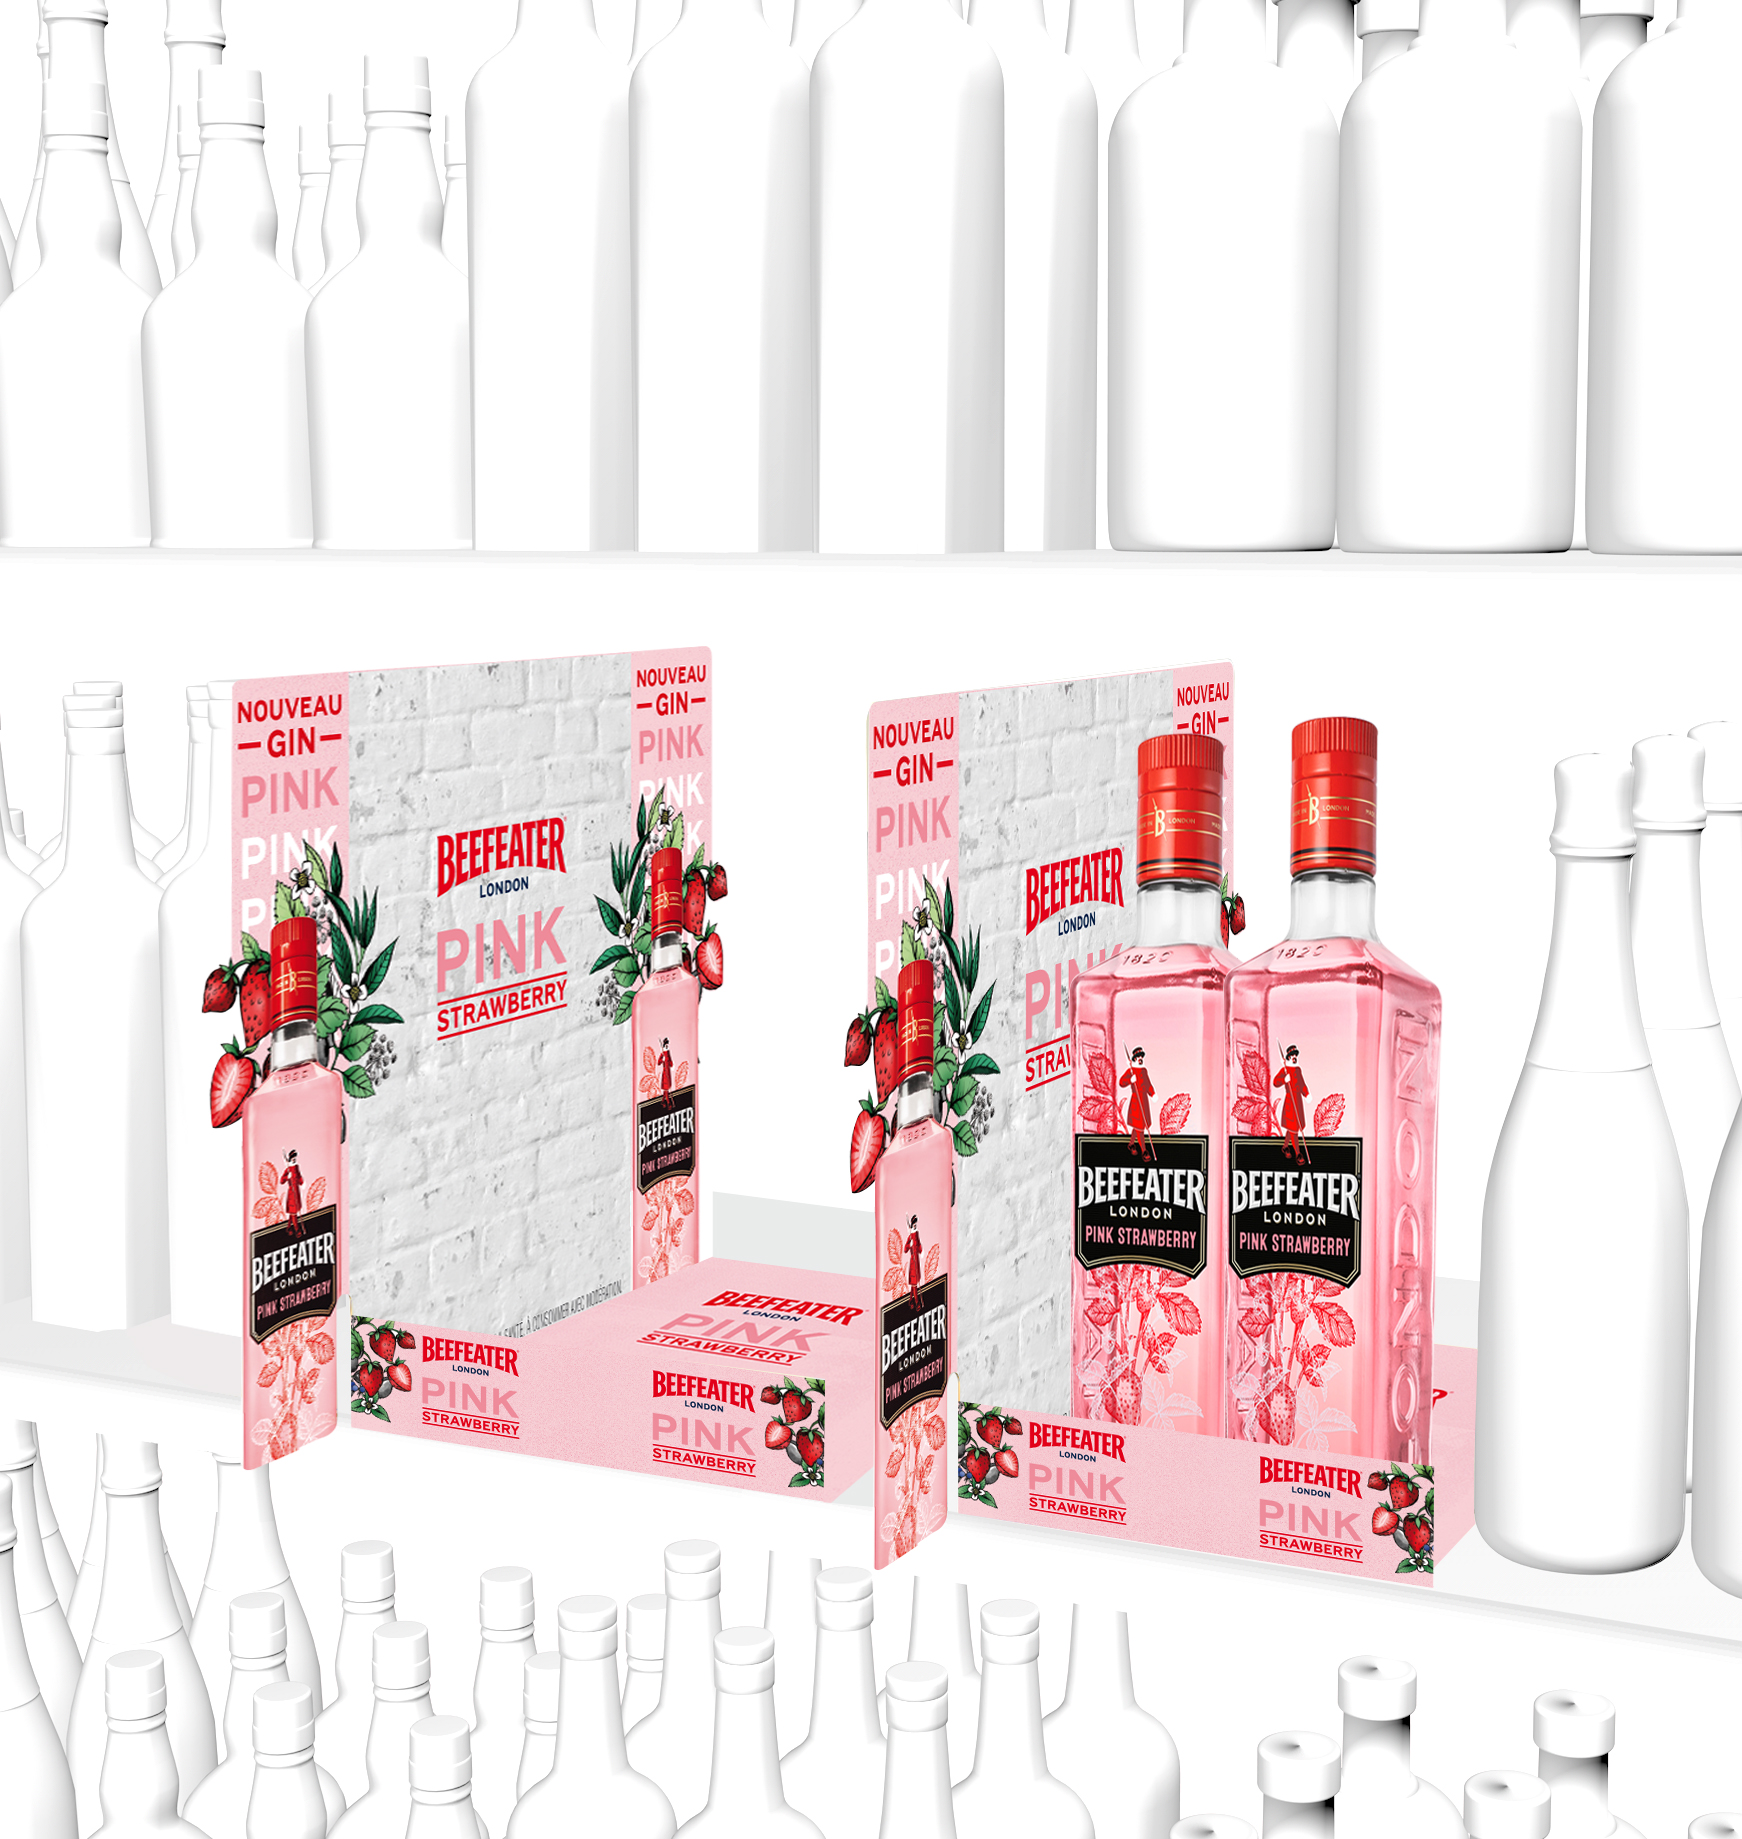 Stop rayon beefeater pink strawberry